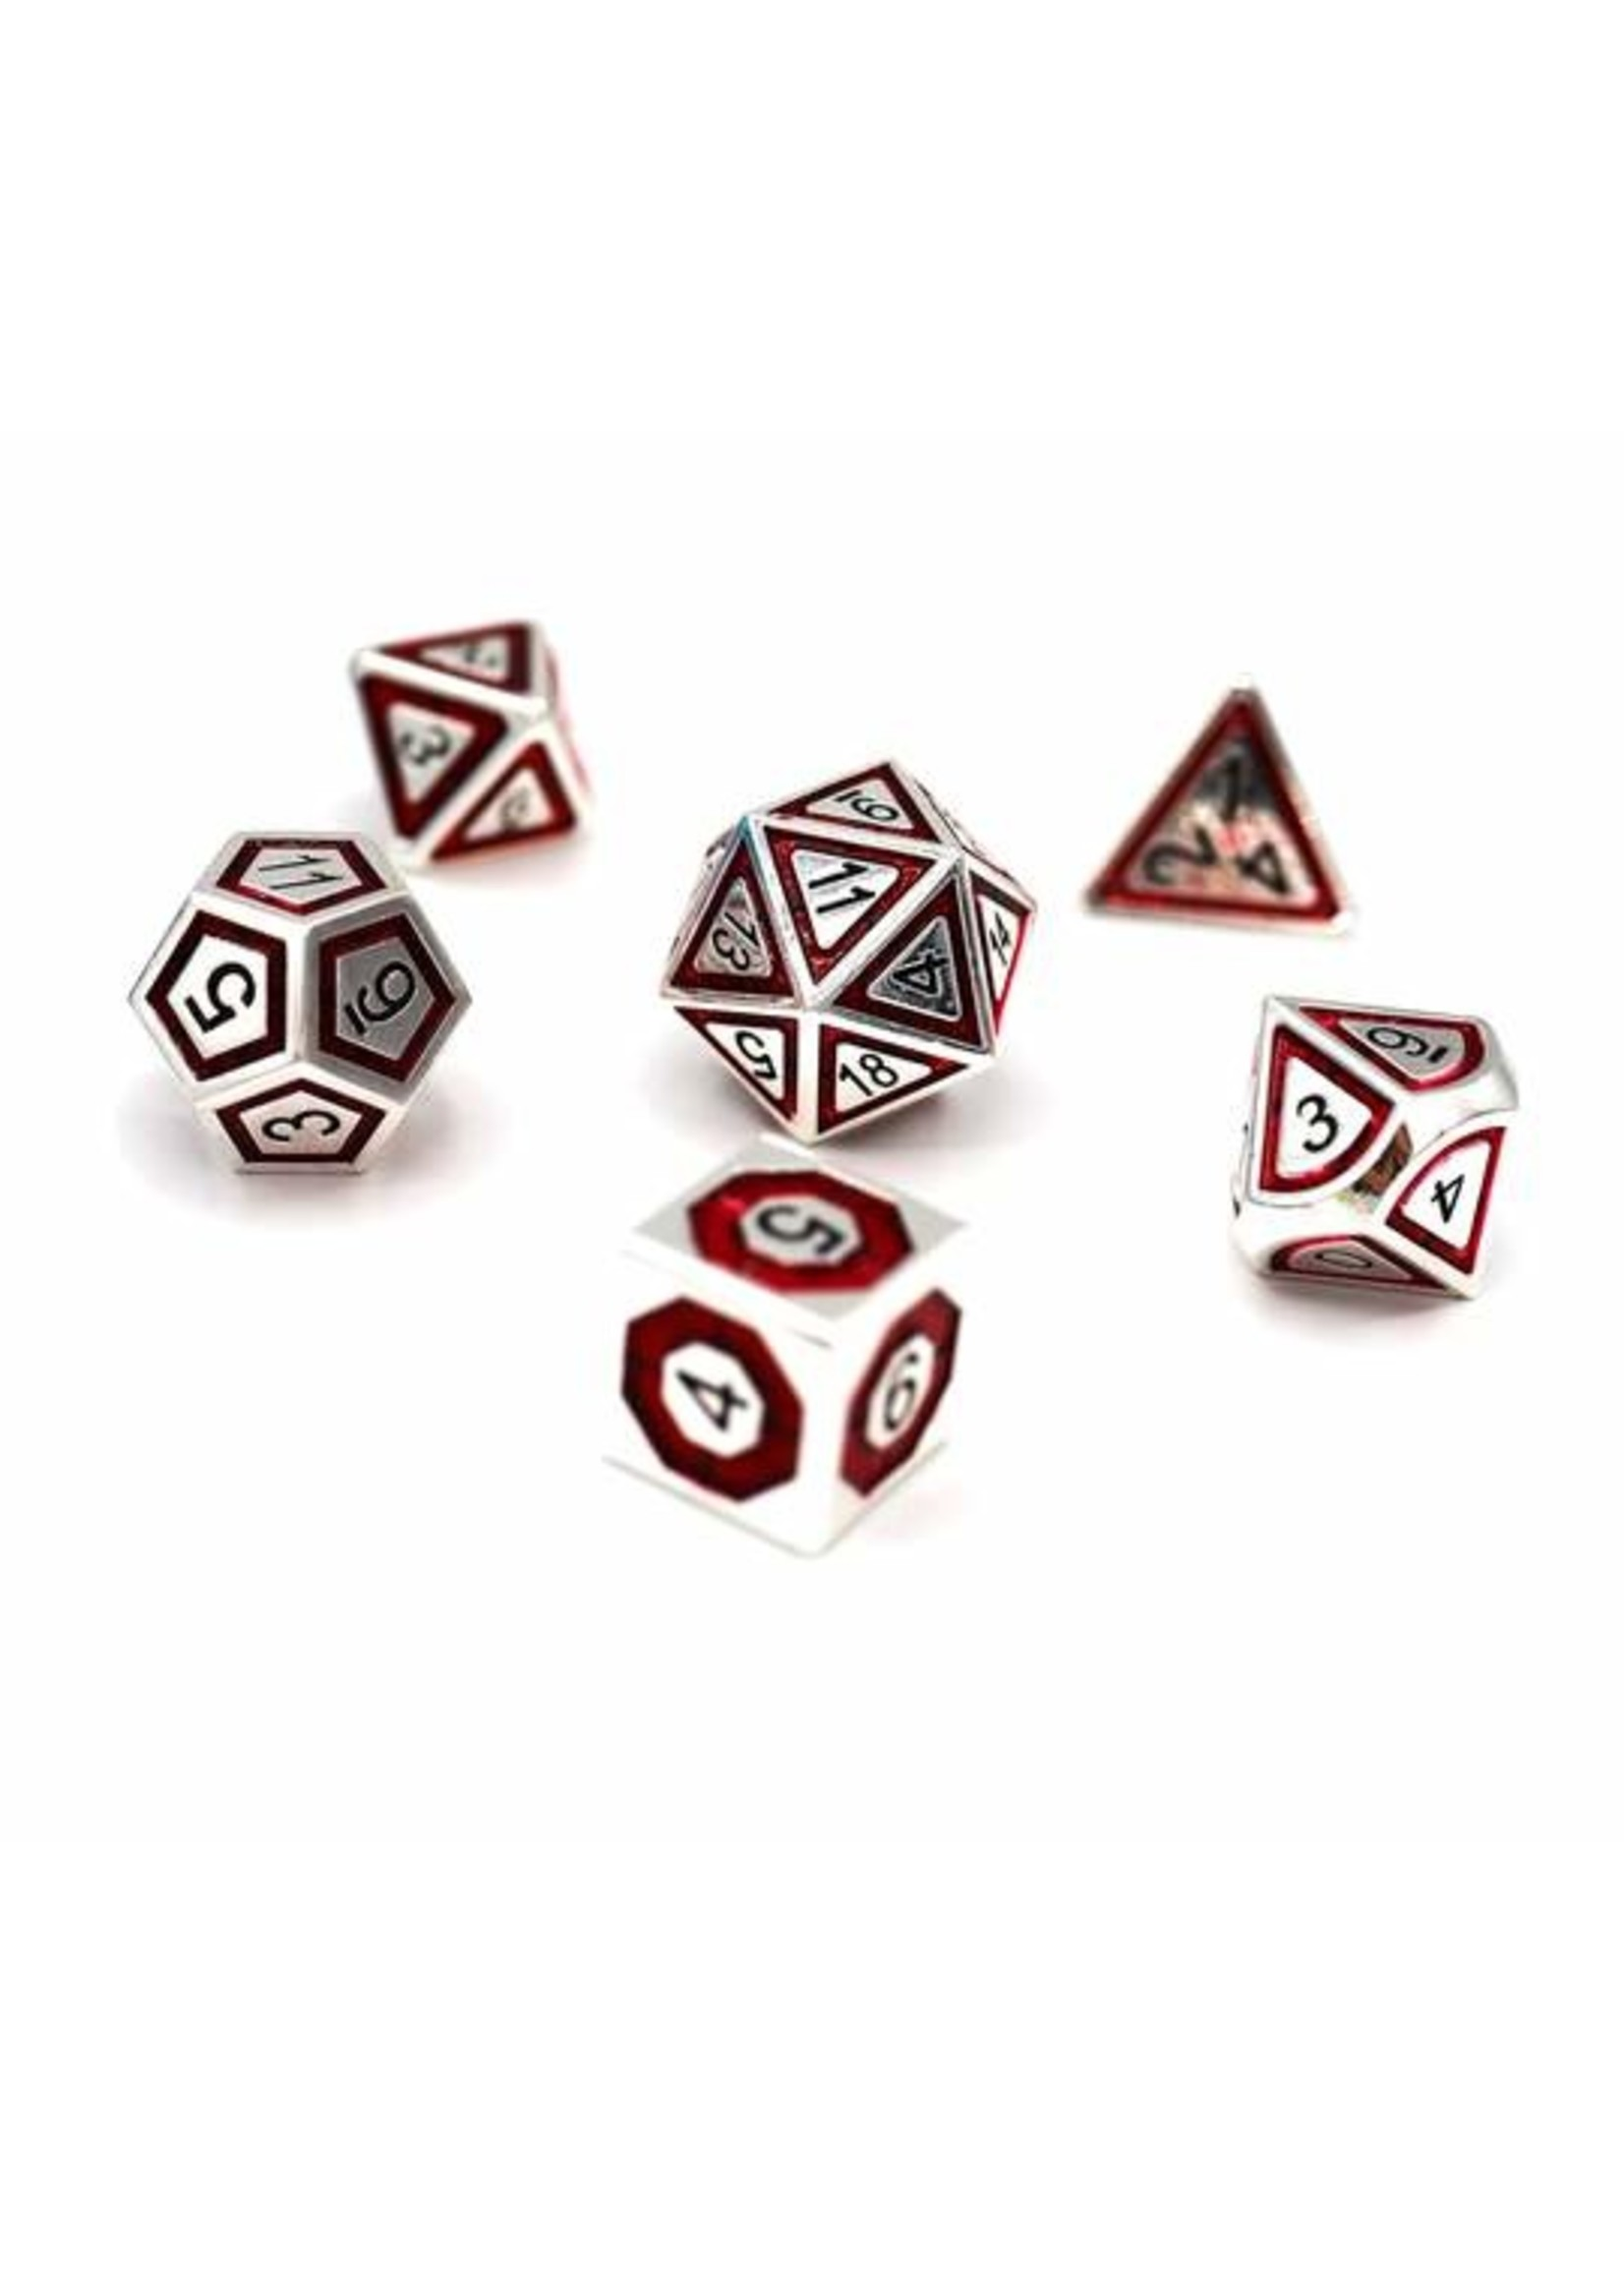 Silver and Crimson Compass Metal RPG Dice Set